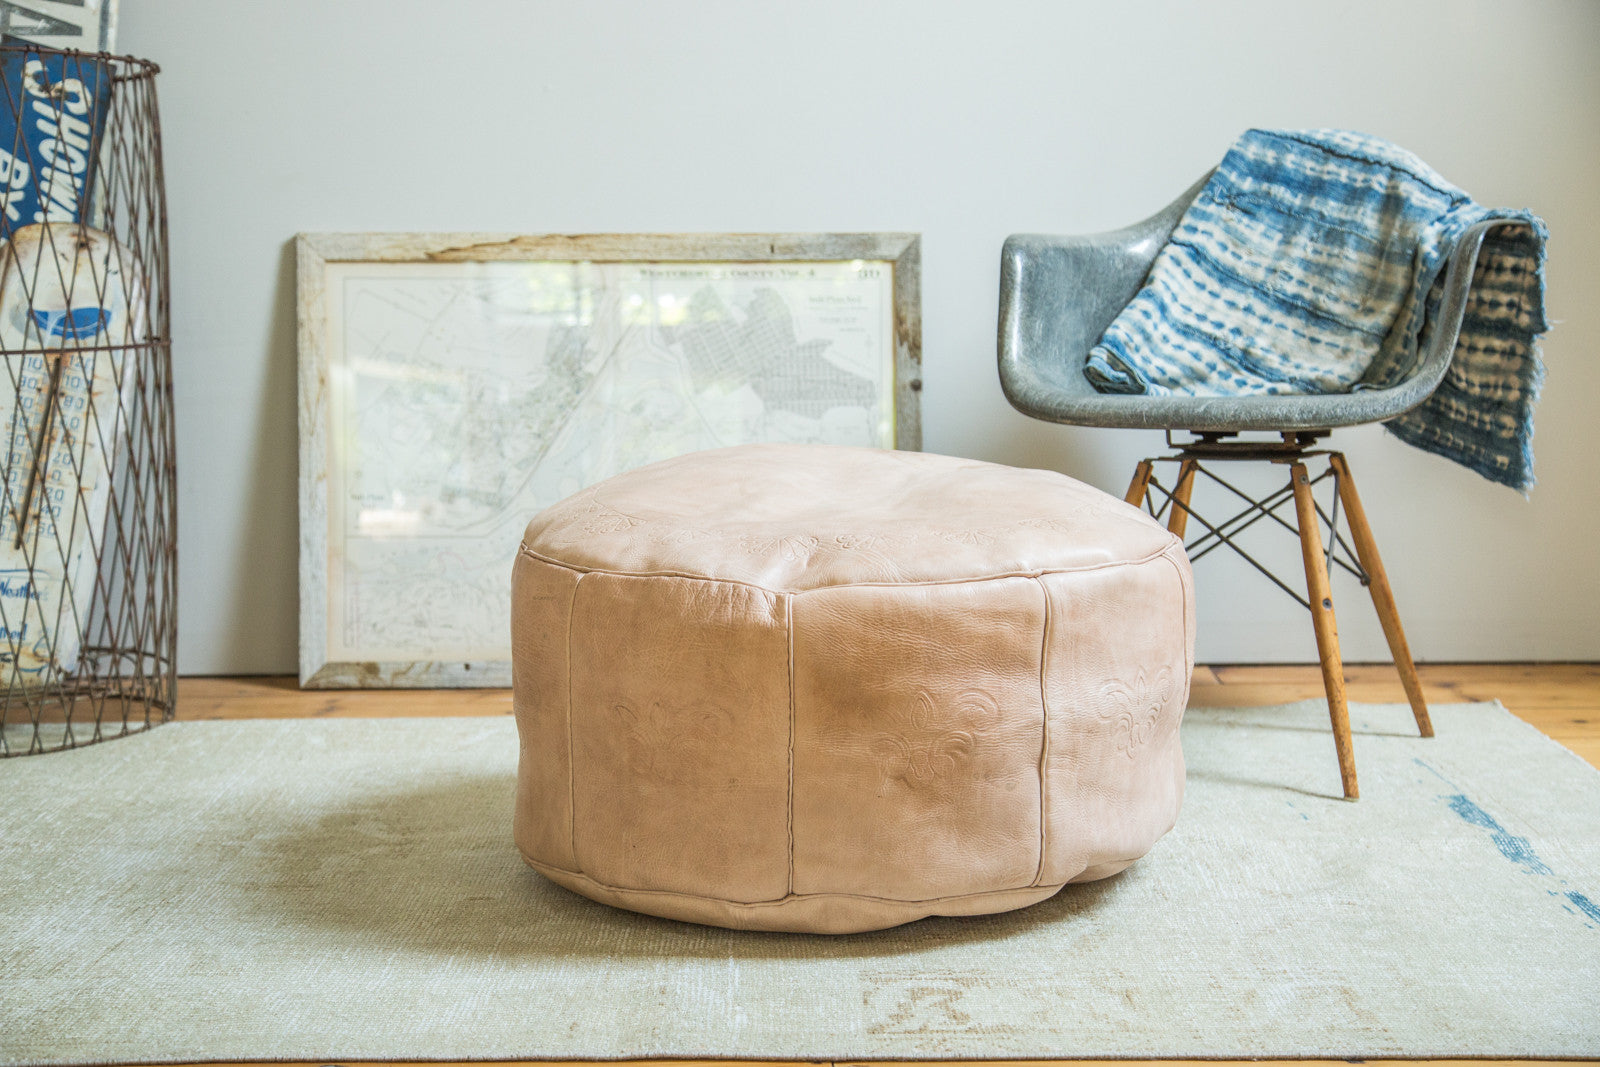 nude pink bohemian style large leather pouf ottoman  onh pouf  - previous image next image antique revival leather moroccan pouf